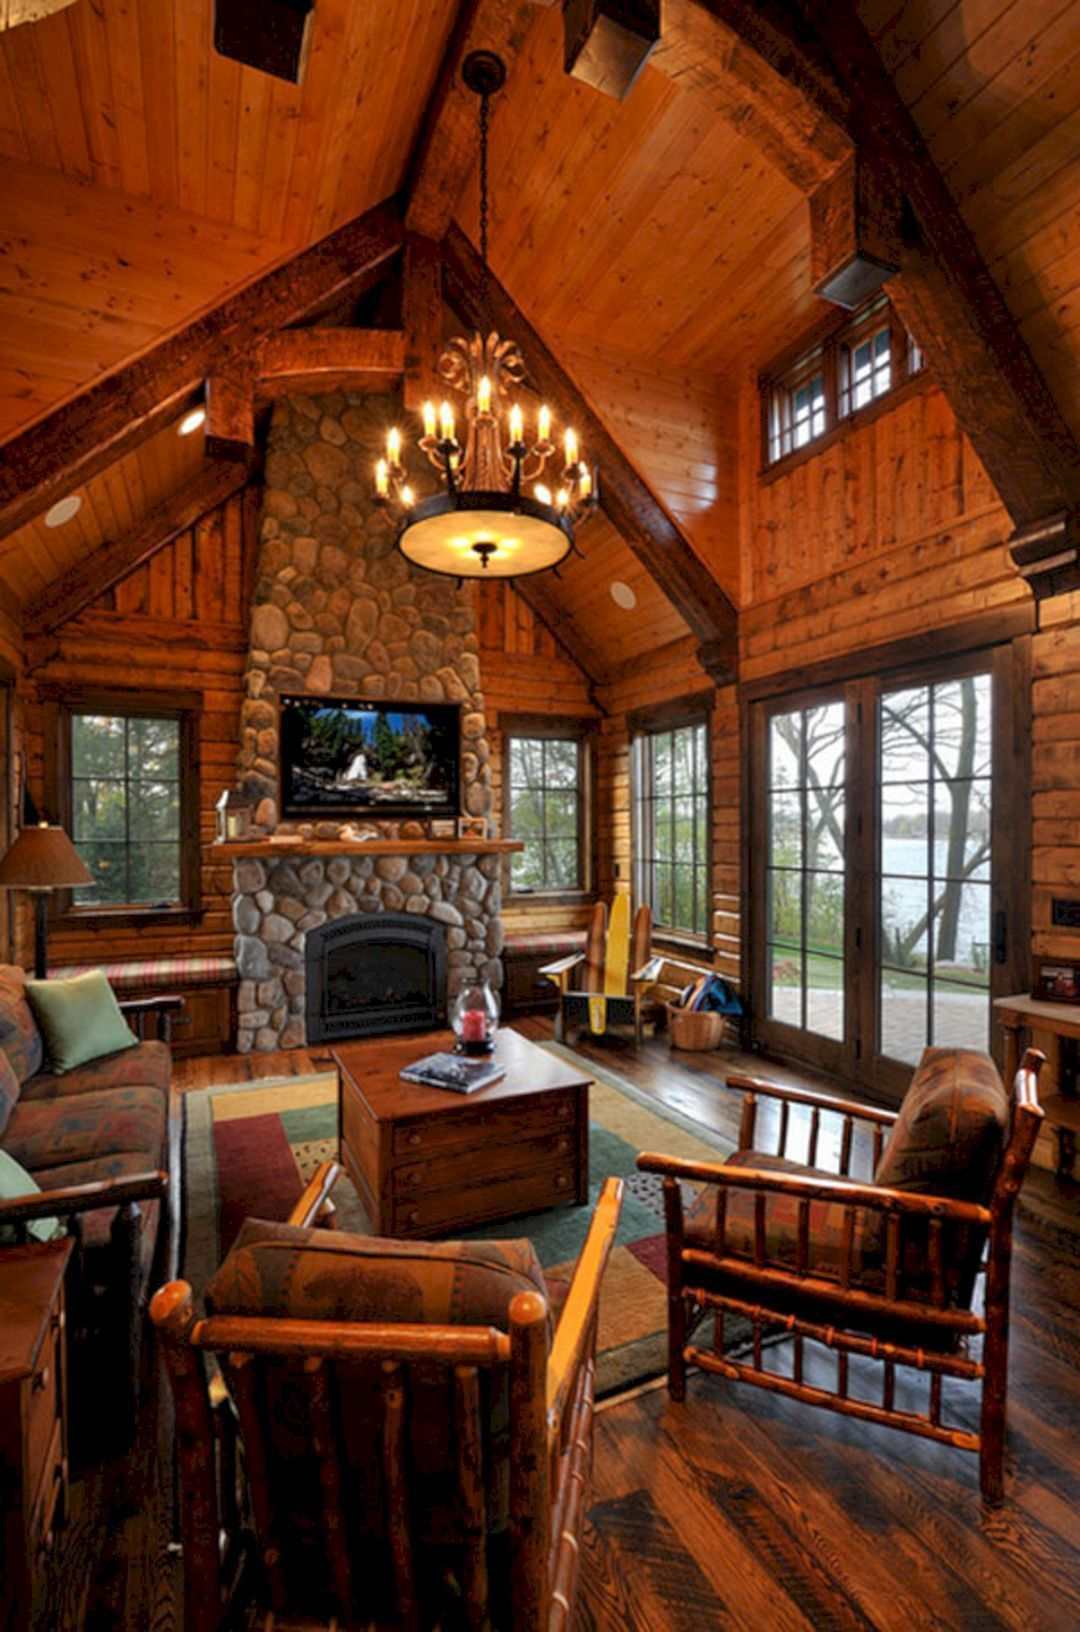 09 Best Cabin Style Interior Inspirations in 2020 | Log ...